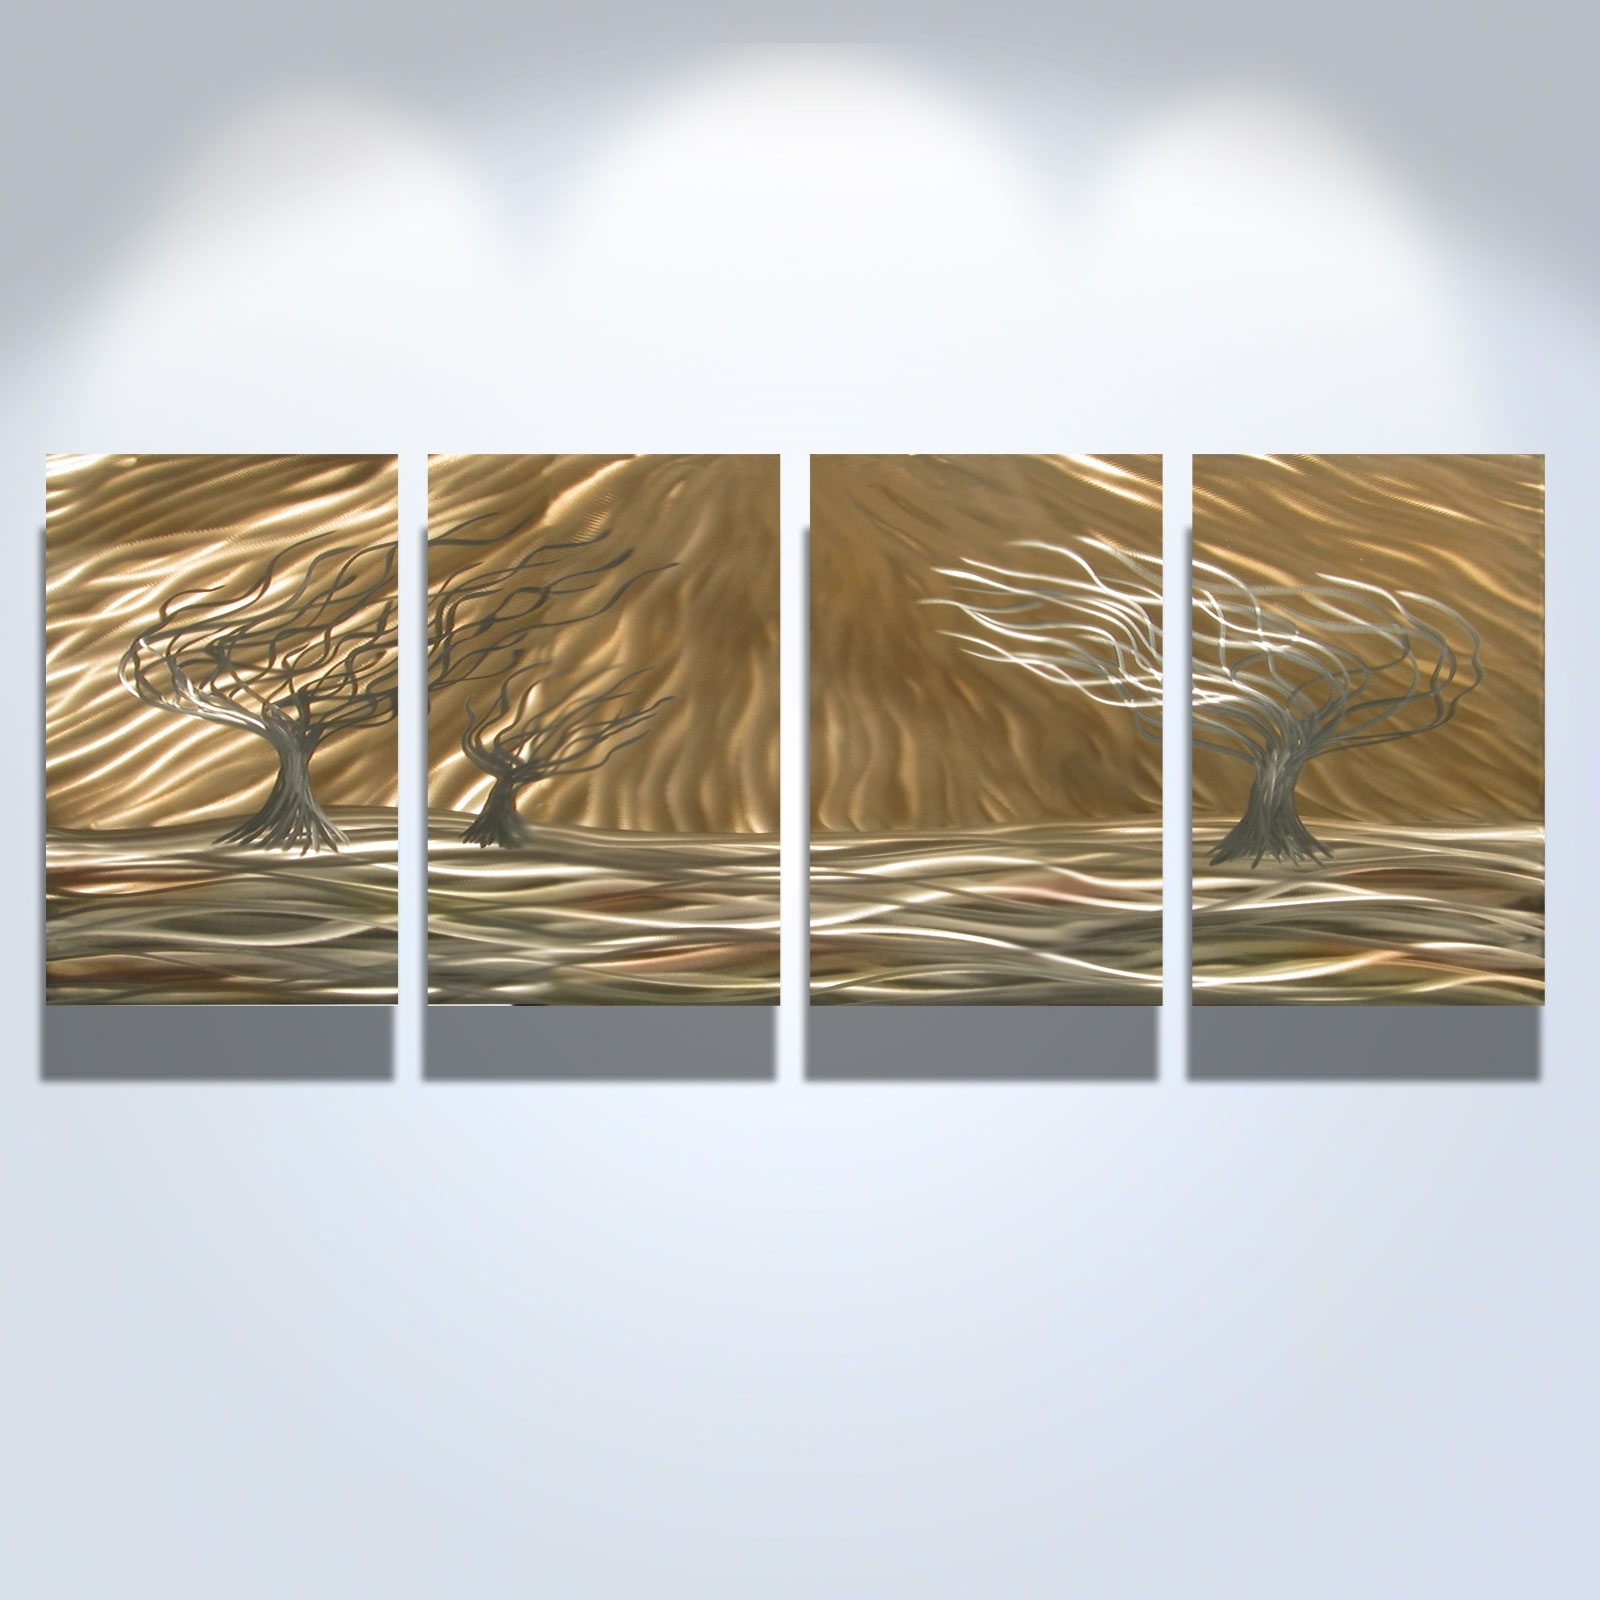 Popular Abstract Metal Wall Art Panels In 3 Trees 4 Panel – Abstract Metal Wall Art Contemporary Modern (View 3 of 15)